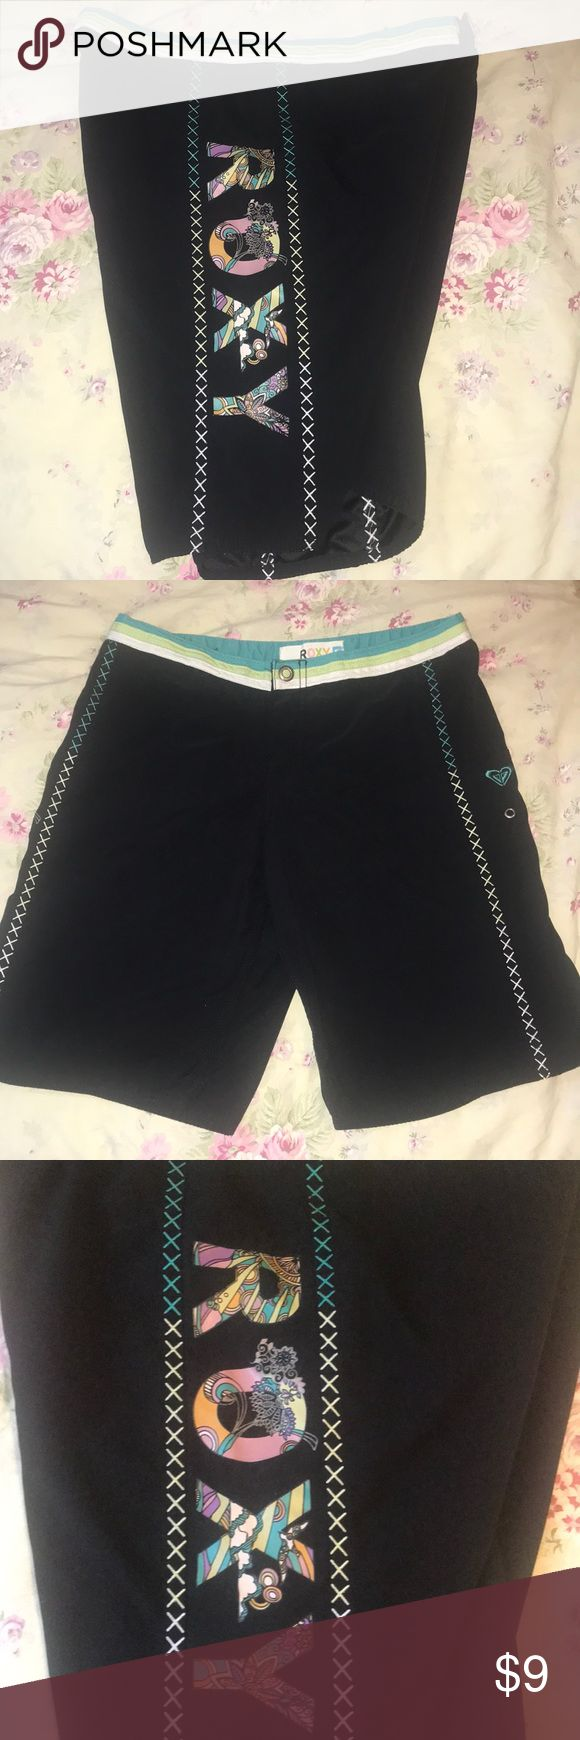 Roxy black long board surf shorts Bermuda size 7 Roxy Size 7 Good pre-owned condition, the waist band white is not so bright. I have a bunch of long surf swim shorts going up and I love to bundle. 100% polyester Roxy Shorts